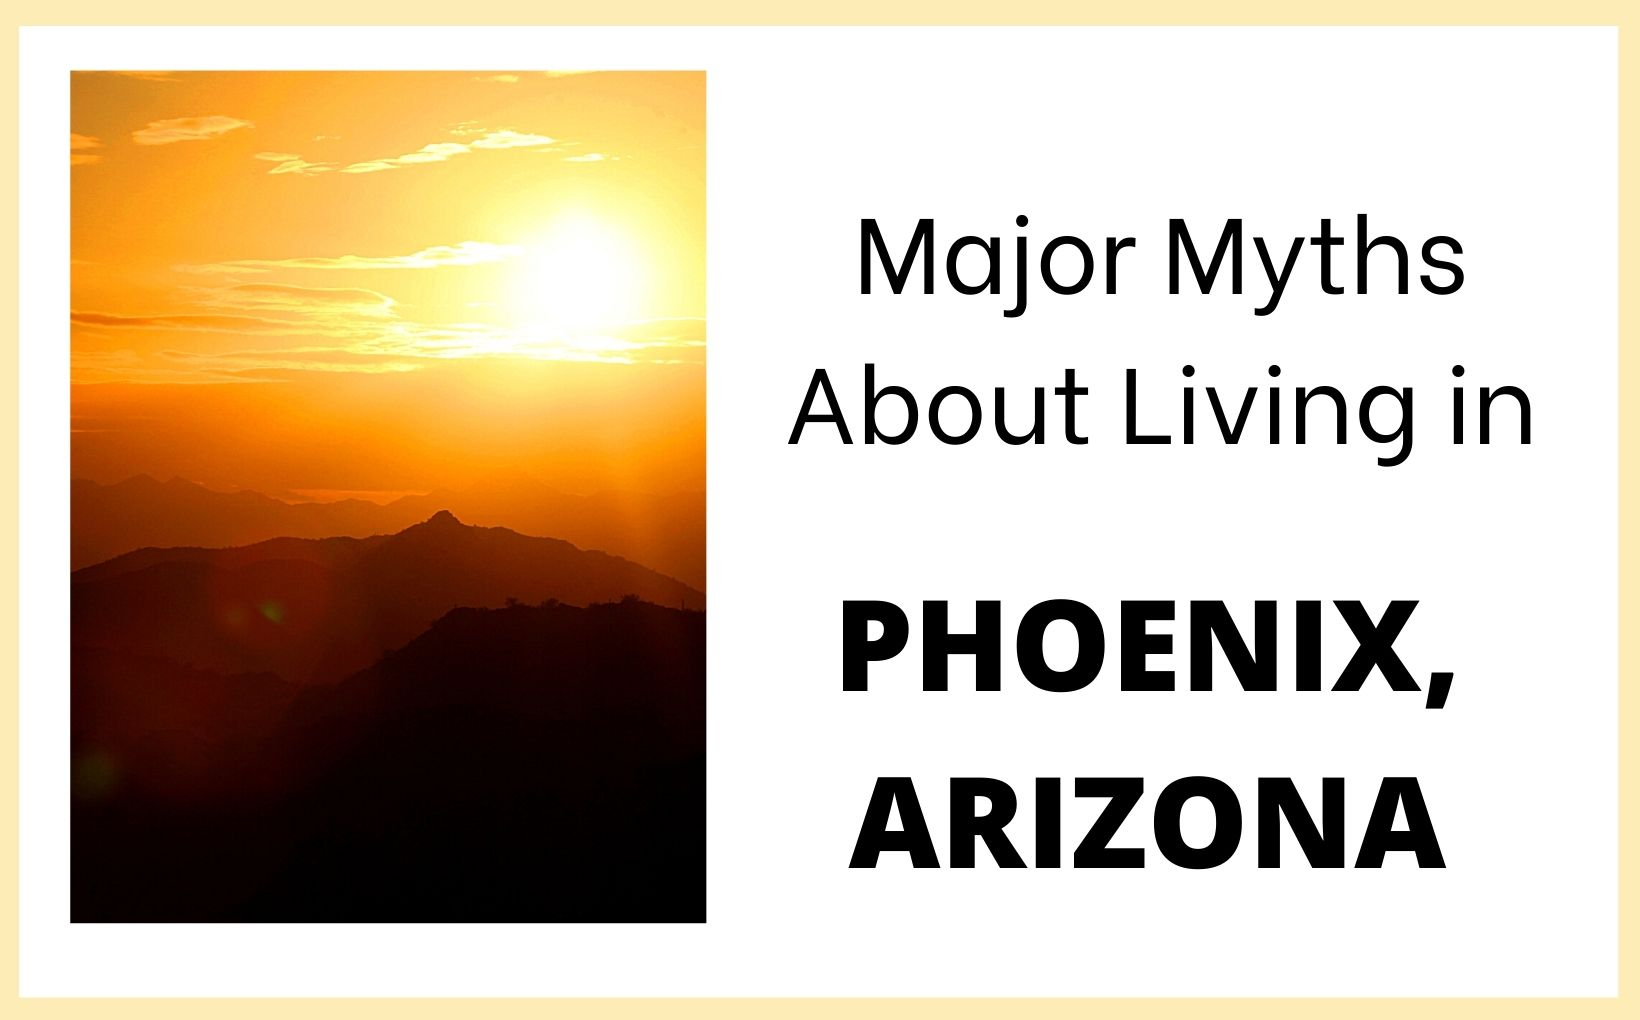 Myths of living in Phoenix feature image